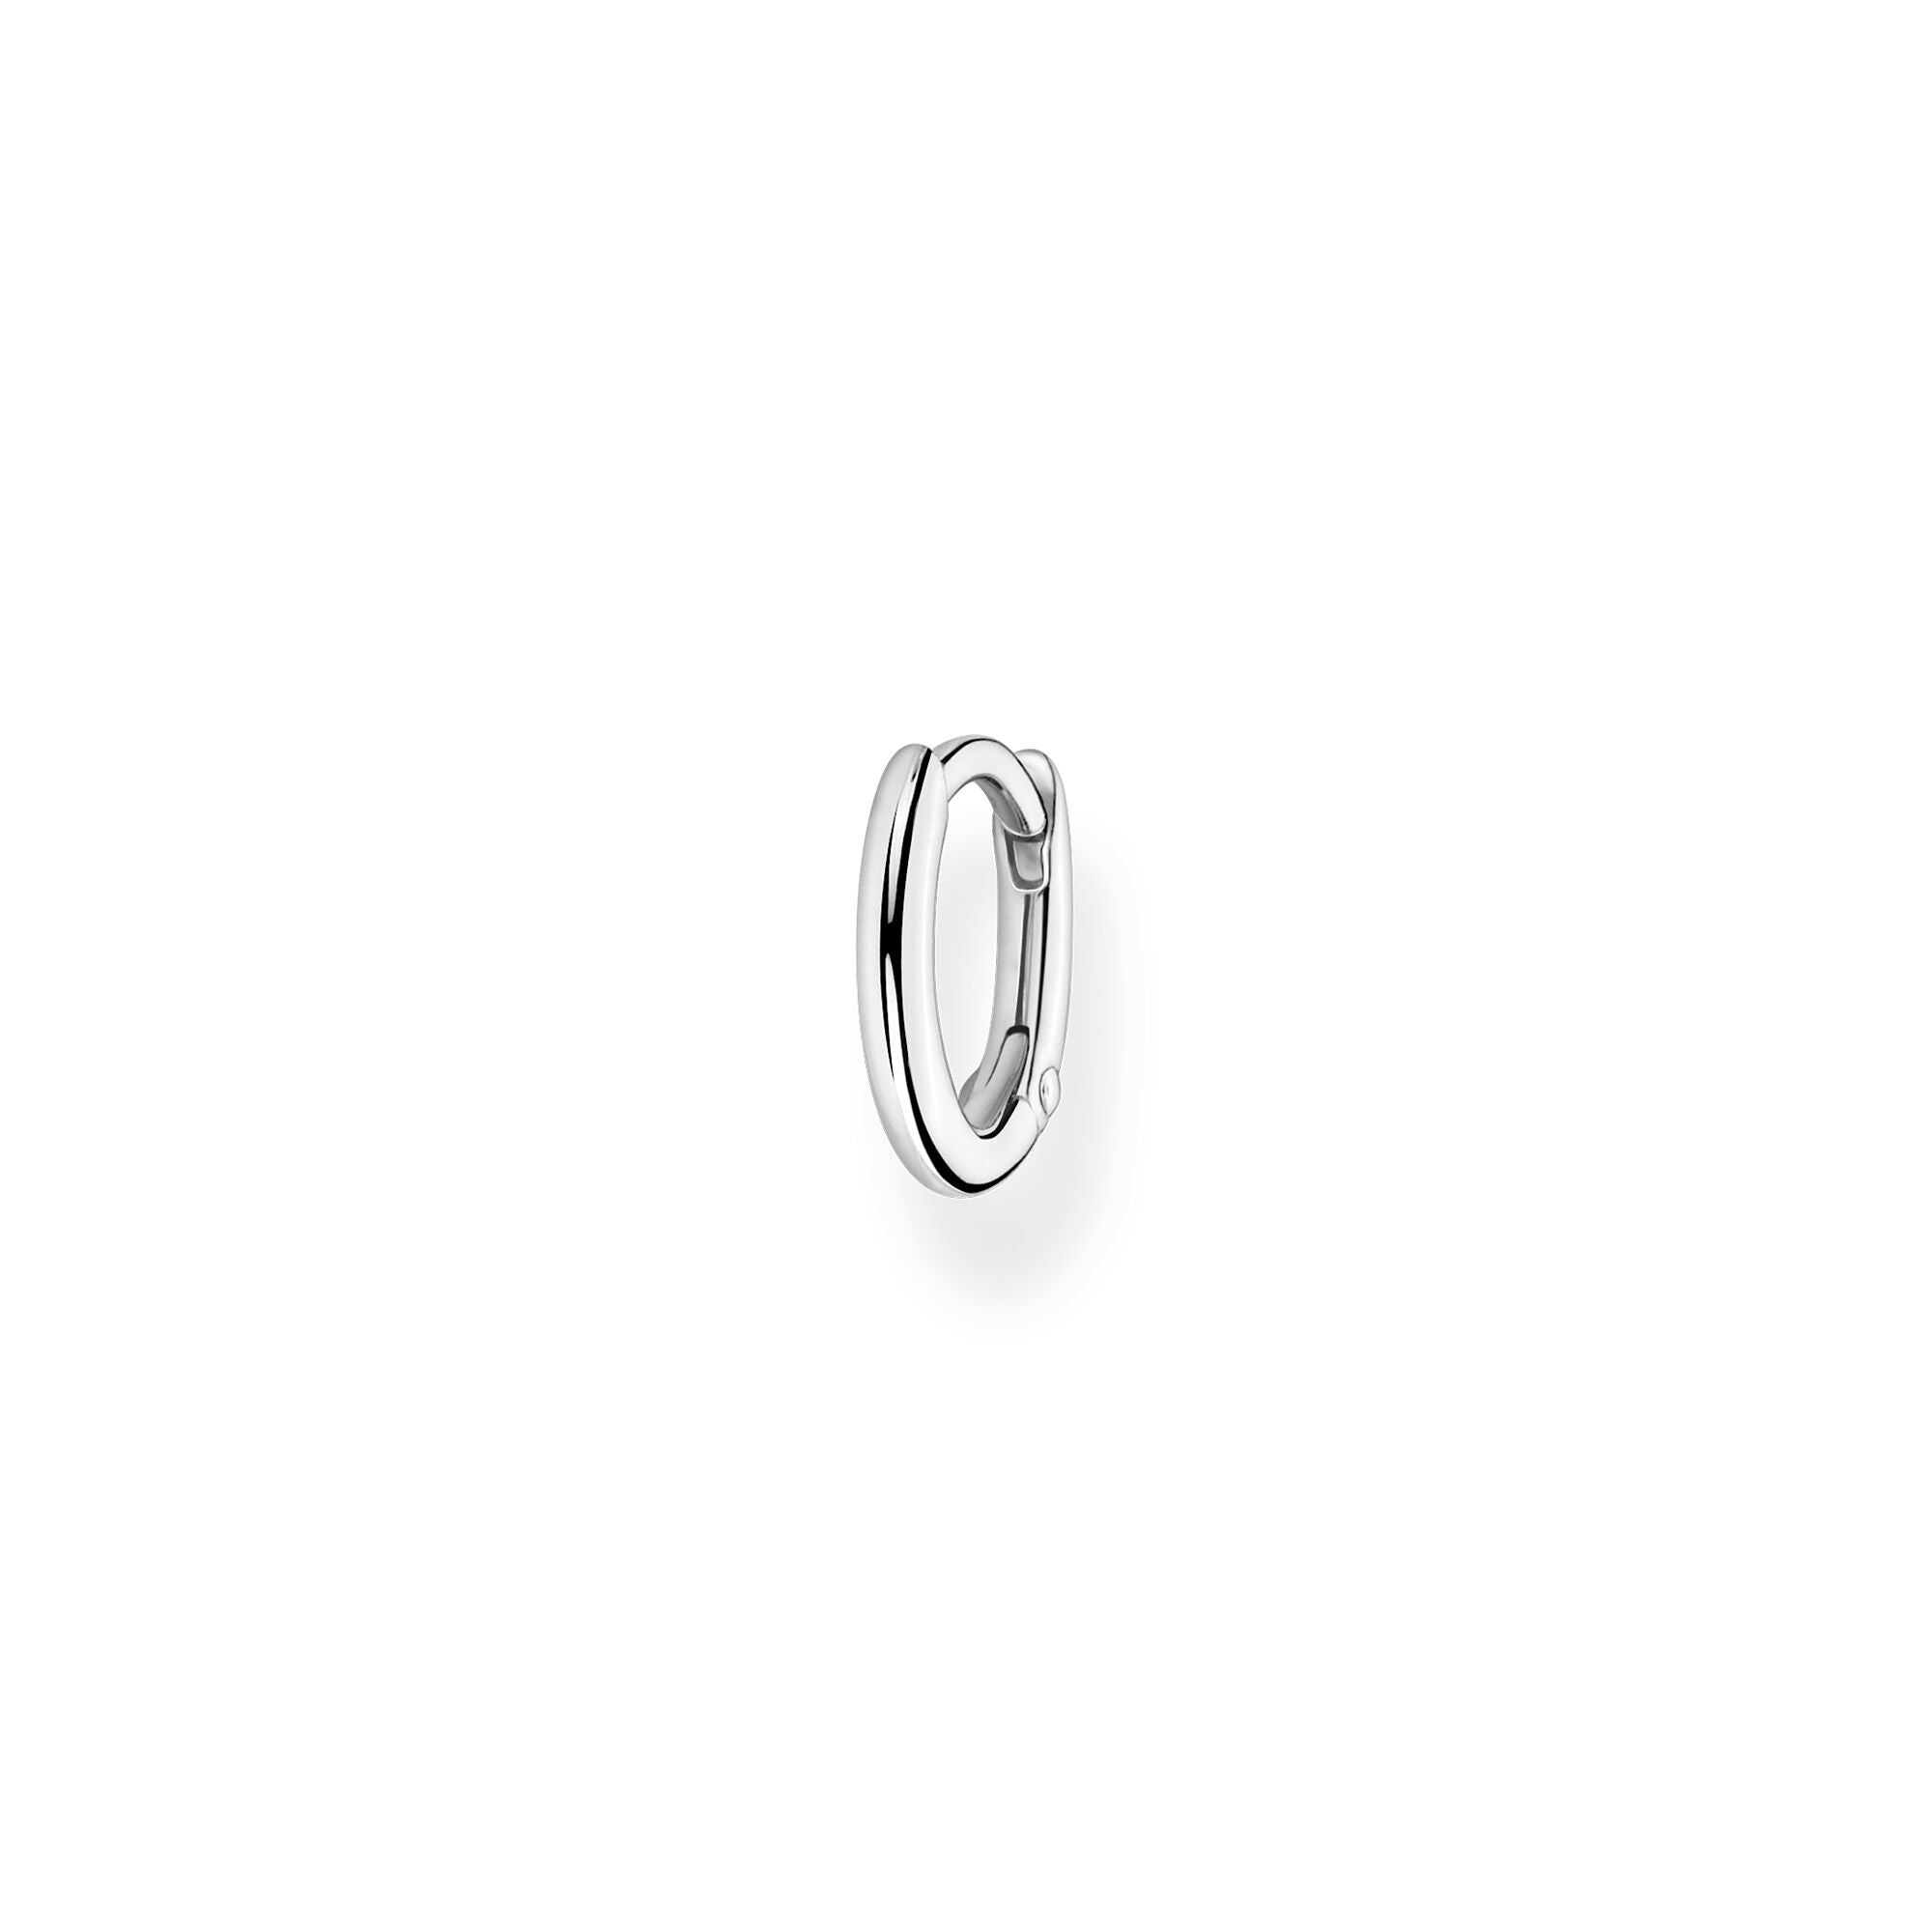 STERLING SILVER CHARMING COLLECTION 12MM HOOP EARRING SINGLE